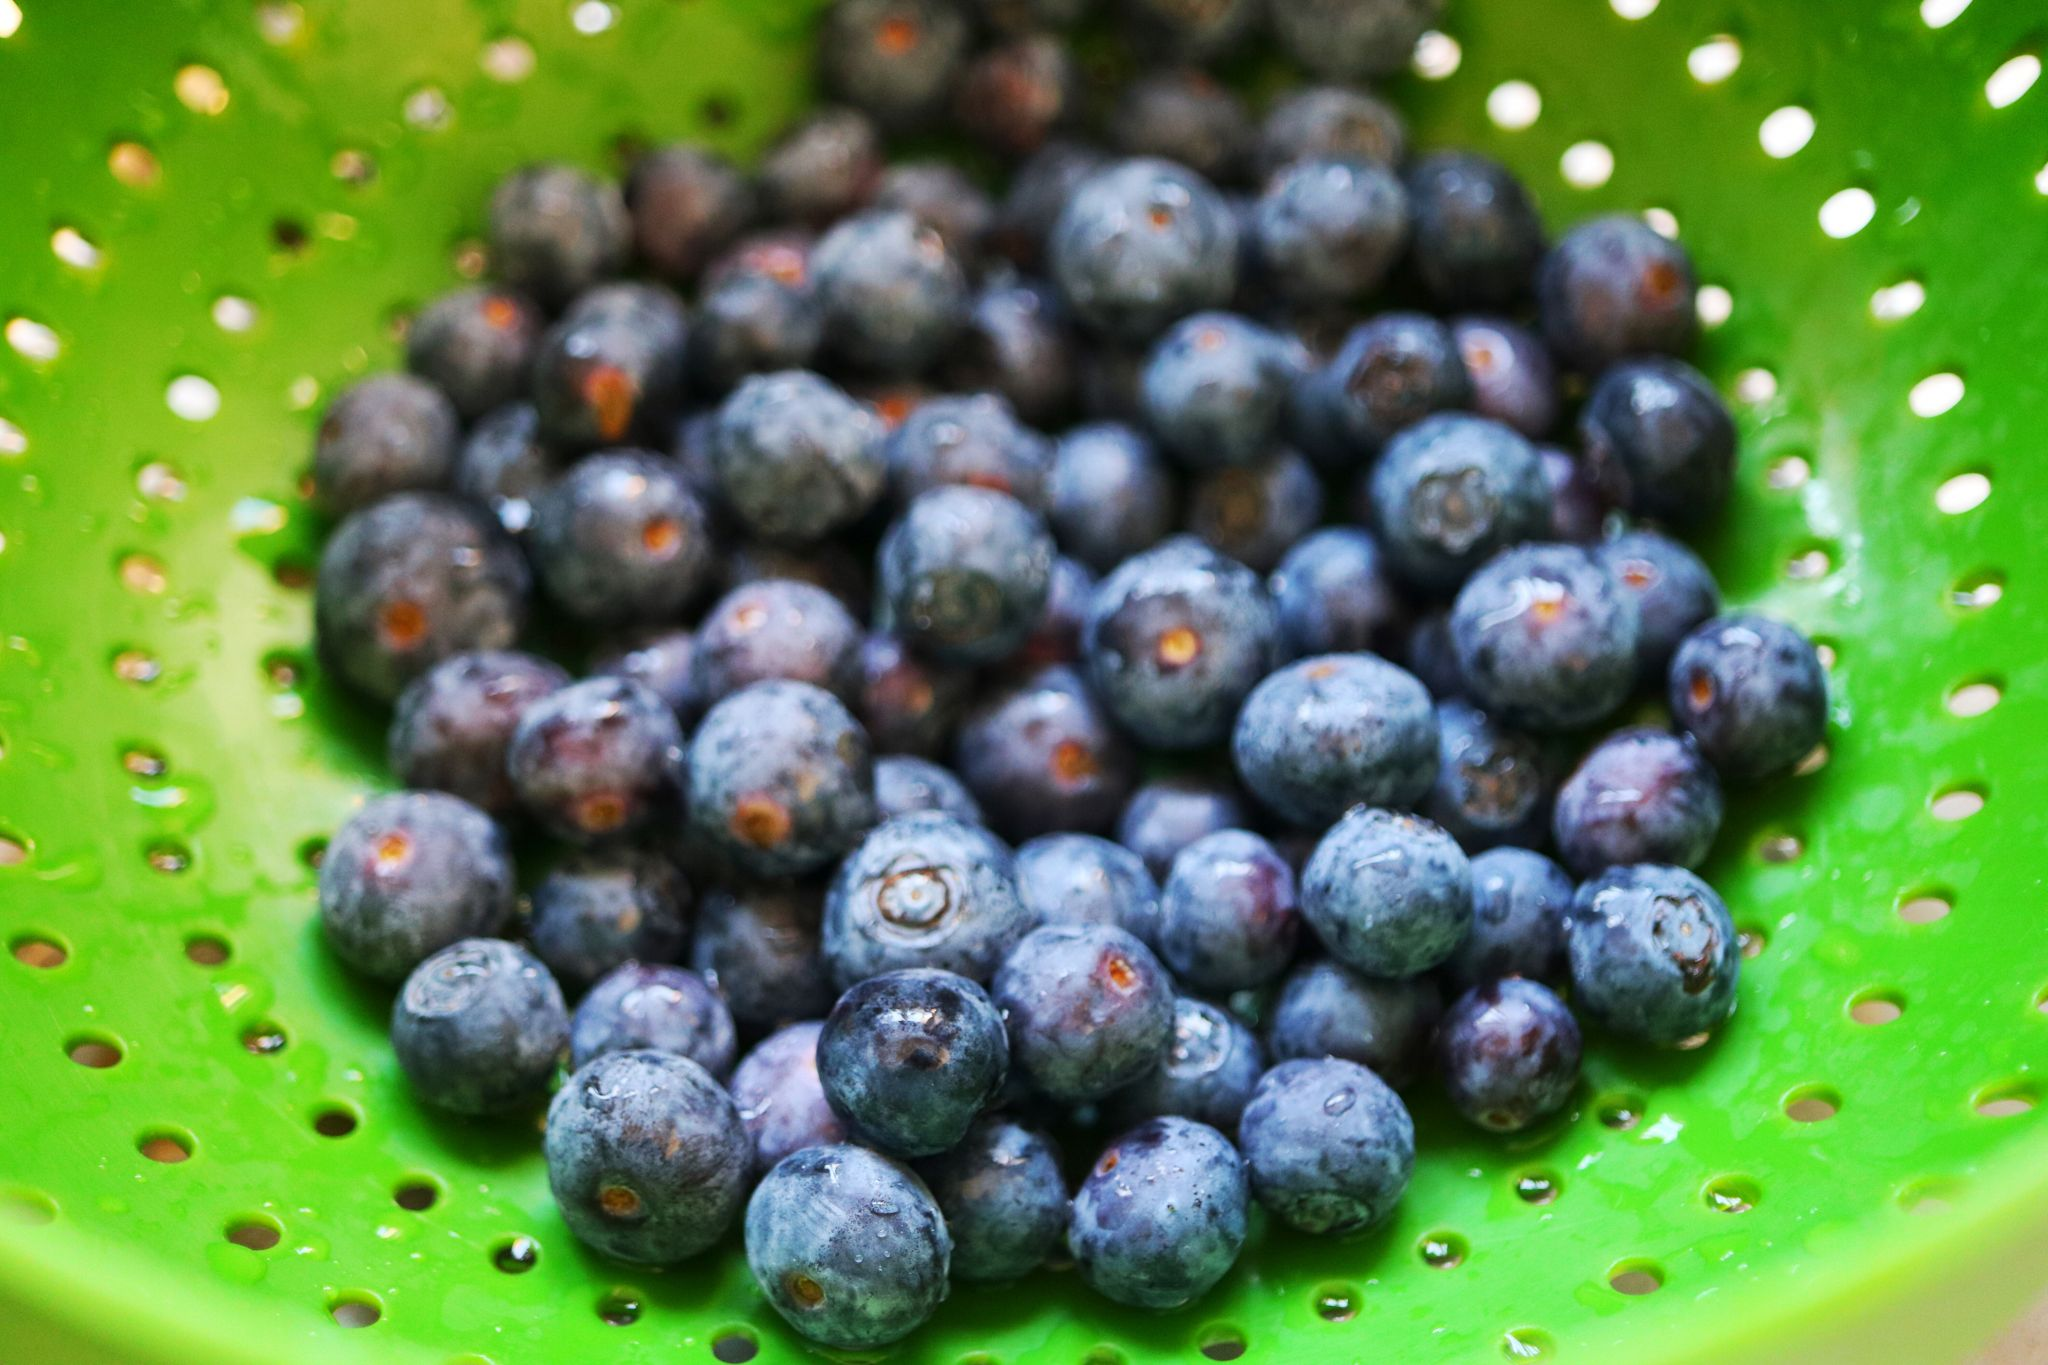 Argentinean blueberries